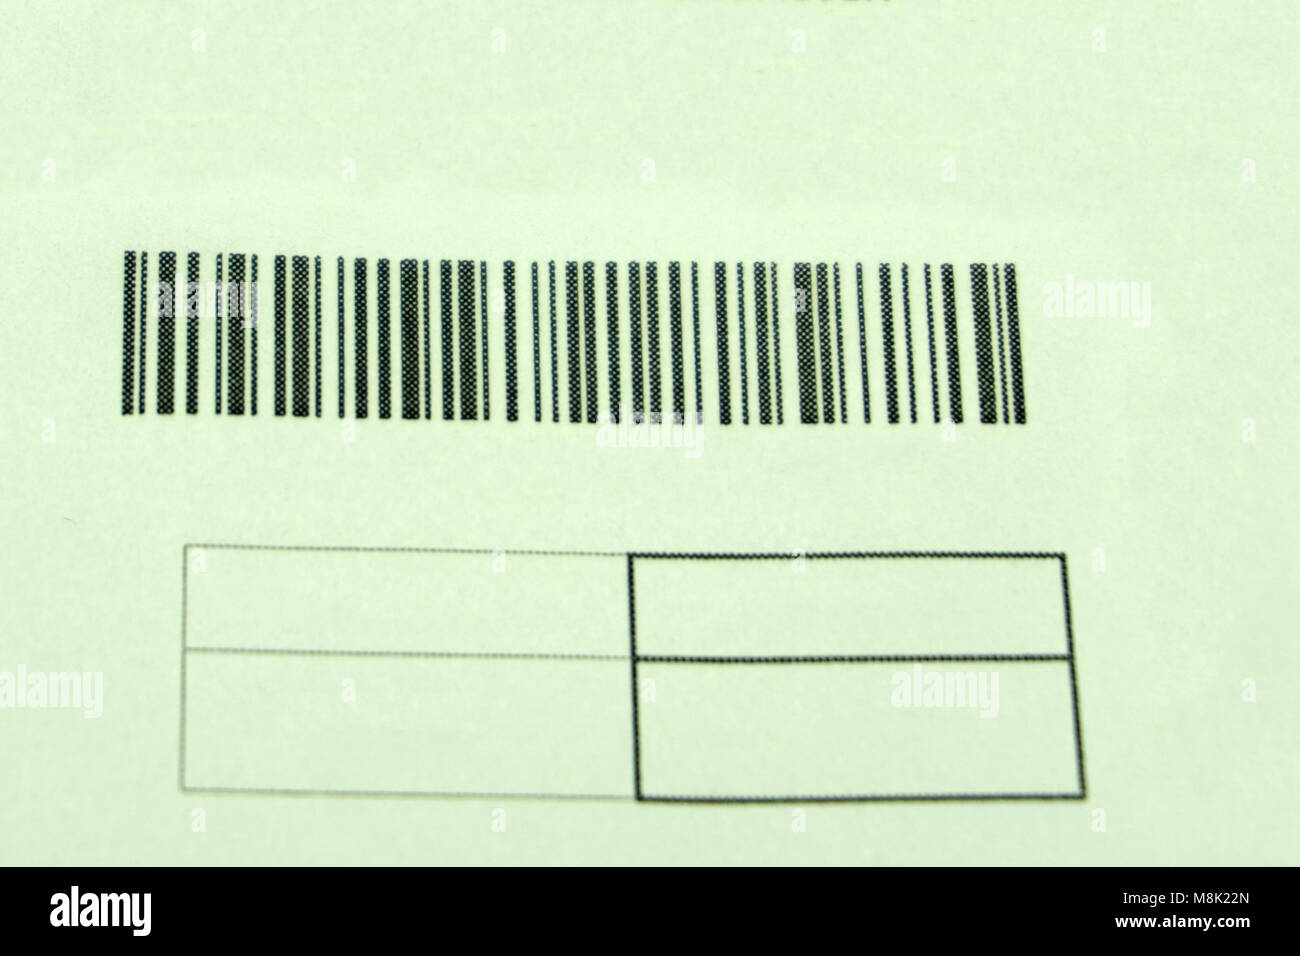 barcode label on shipping box being scanned with red laser device